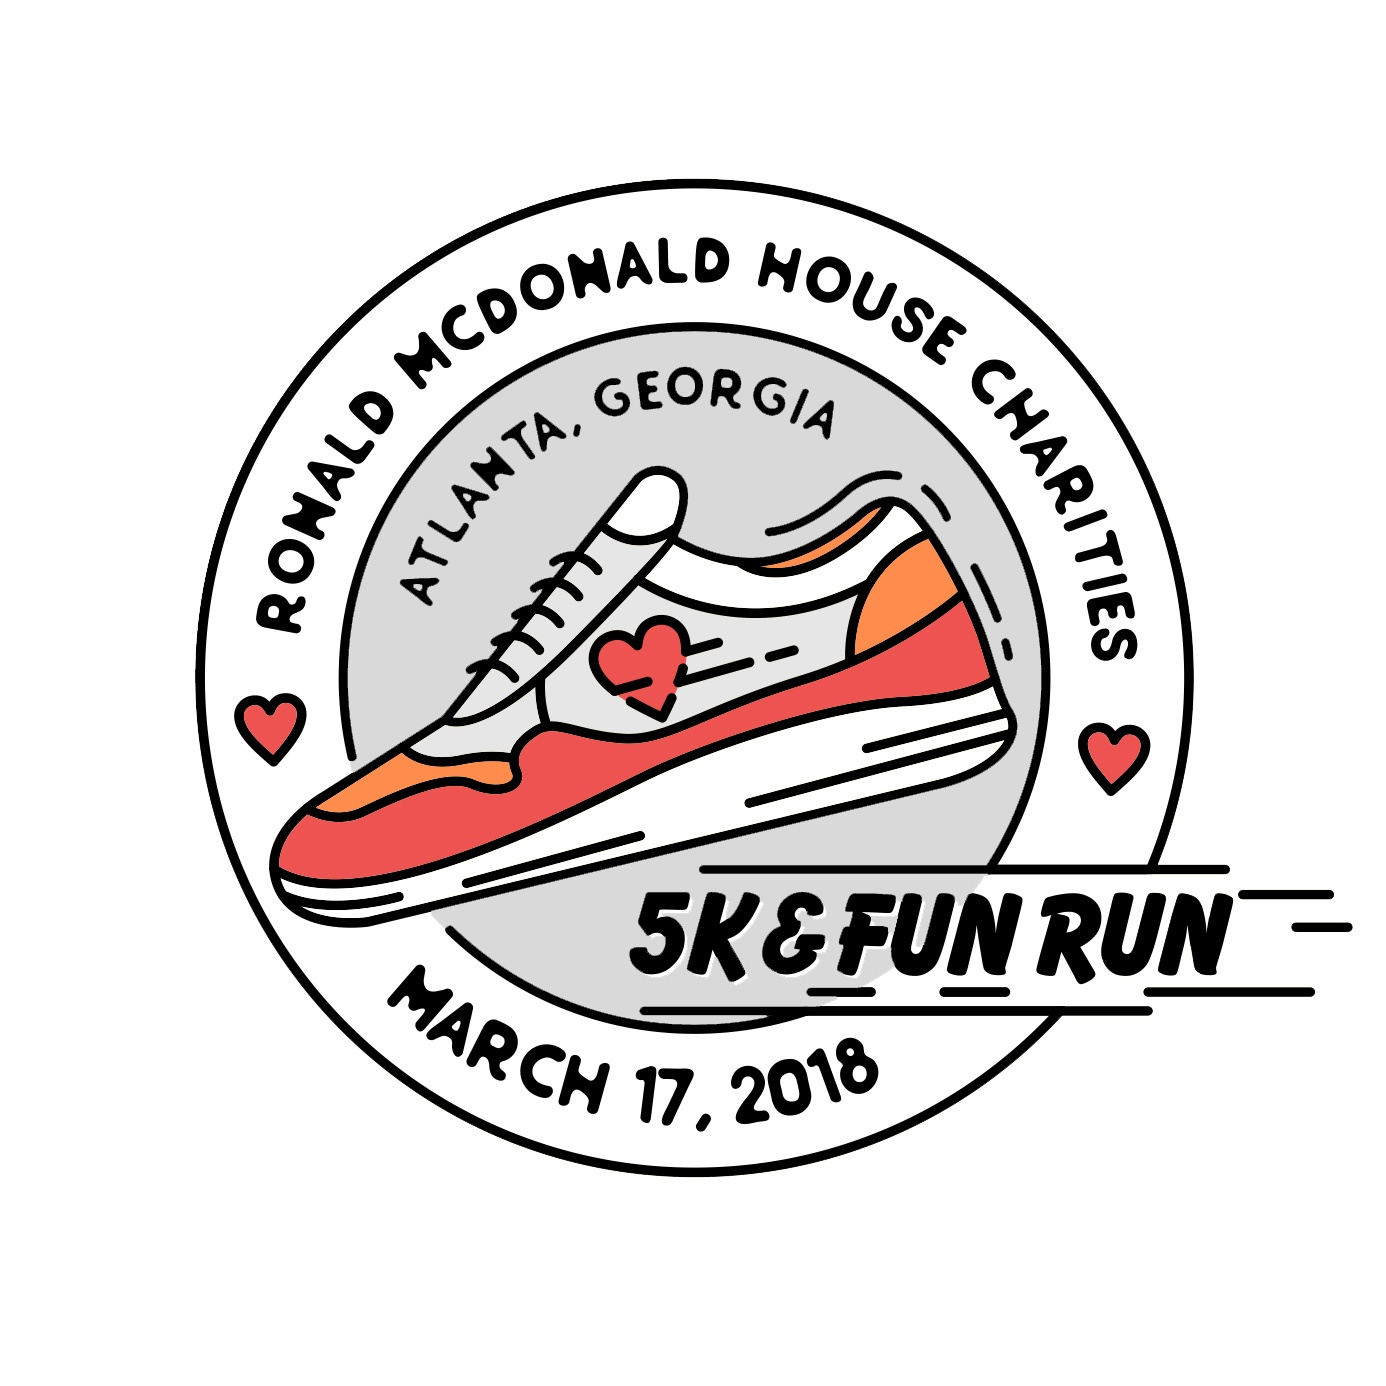 I'm excited to share the inaugural Ronald McDonald House 5K and Fun Run in Atlanta!